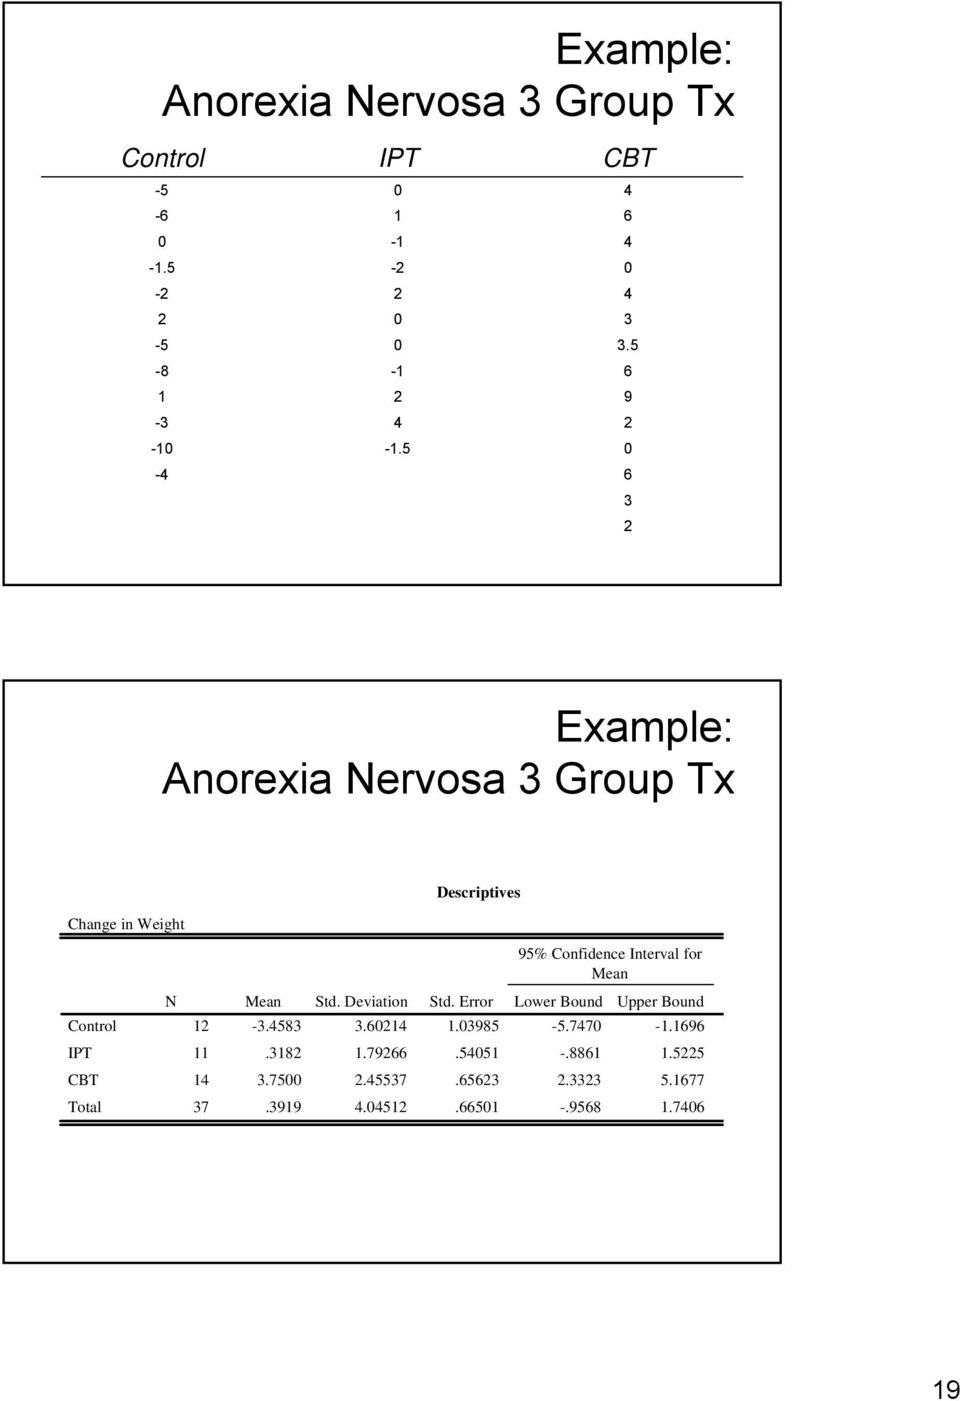 5 6 9 0 6 3 Example: Anorexia Nervosa 3 Group Tx Change in Weight Descriptives Control IPT CBT 95%